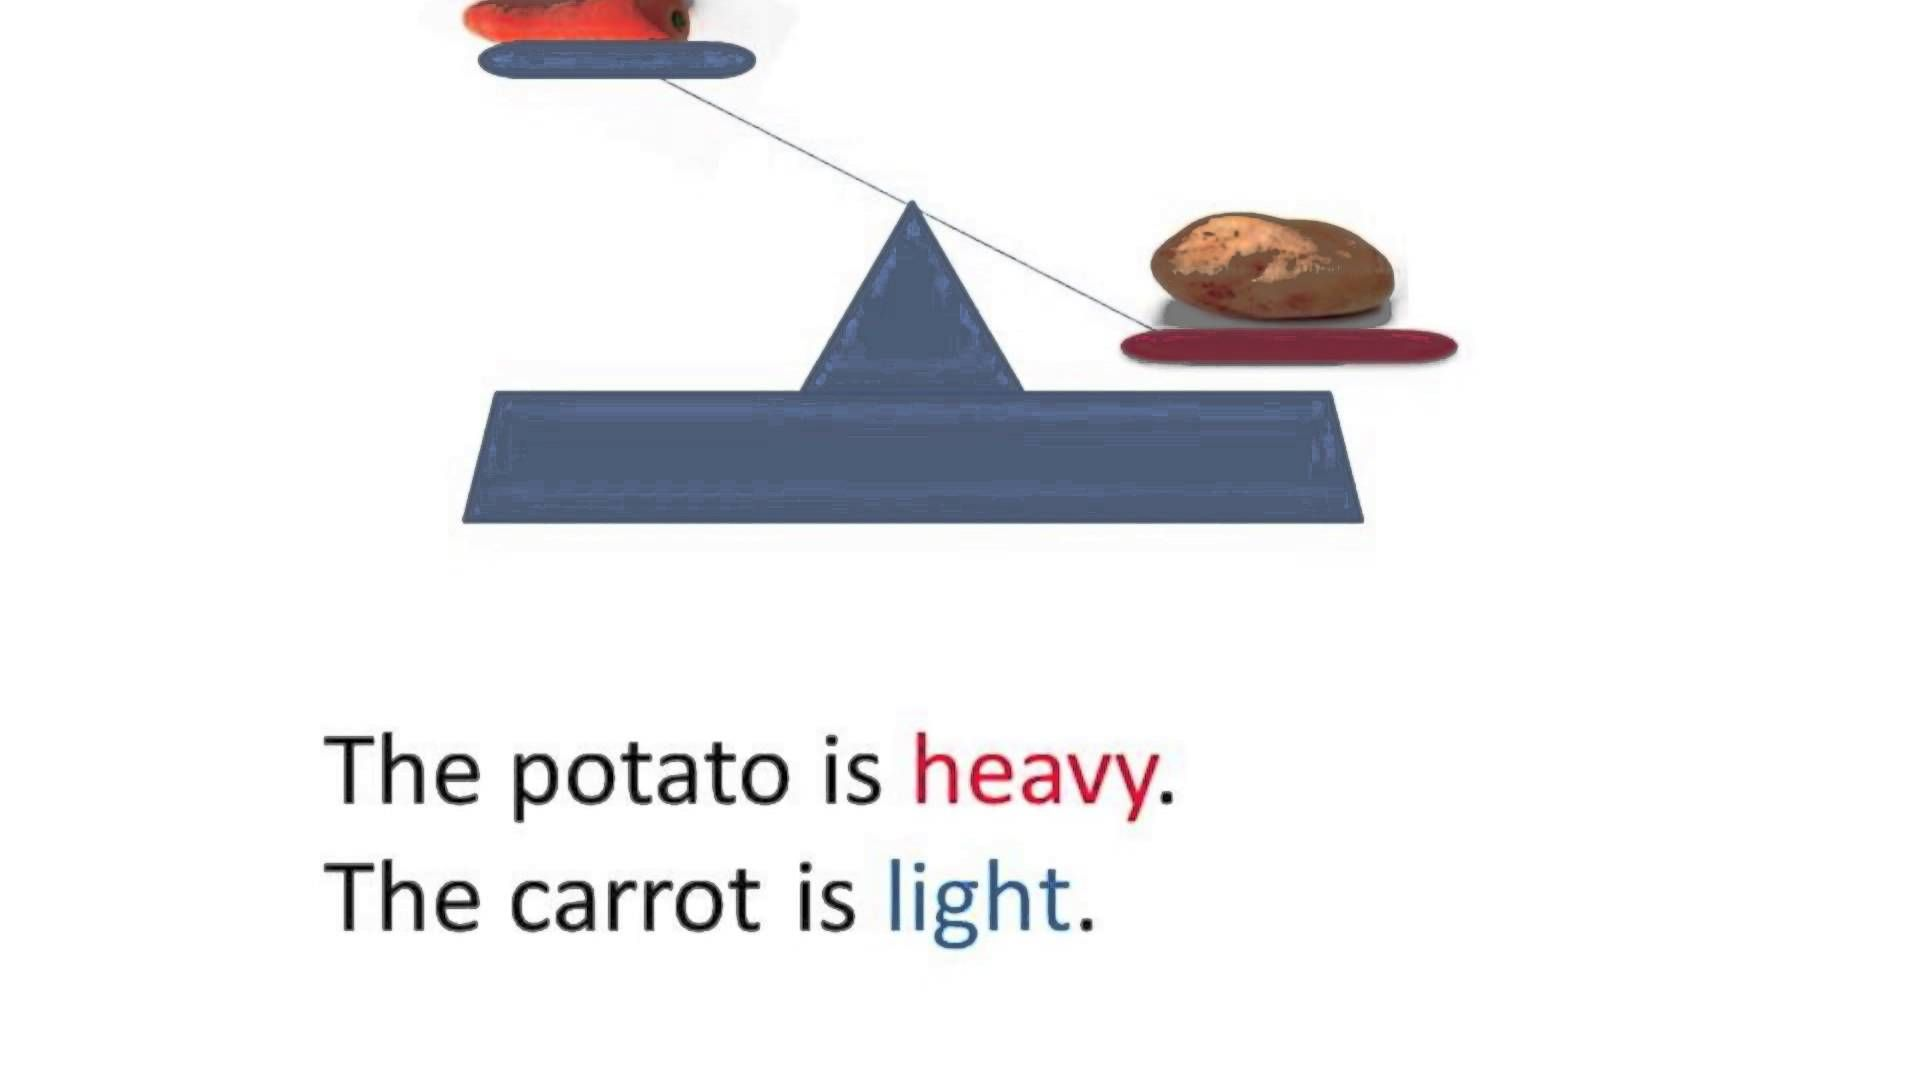 Short Video To Help Students To Understand Heavy And Light